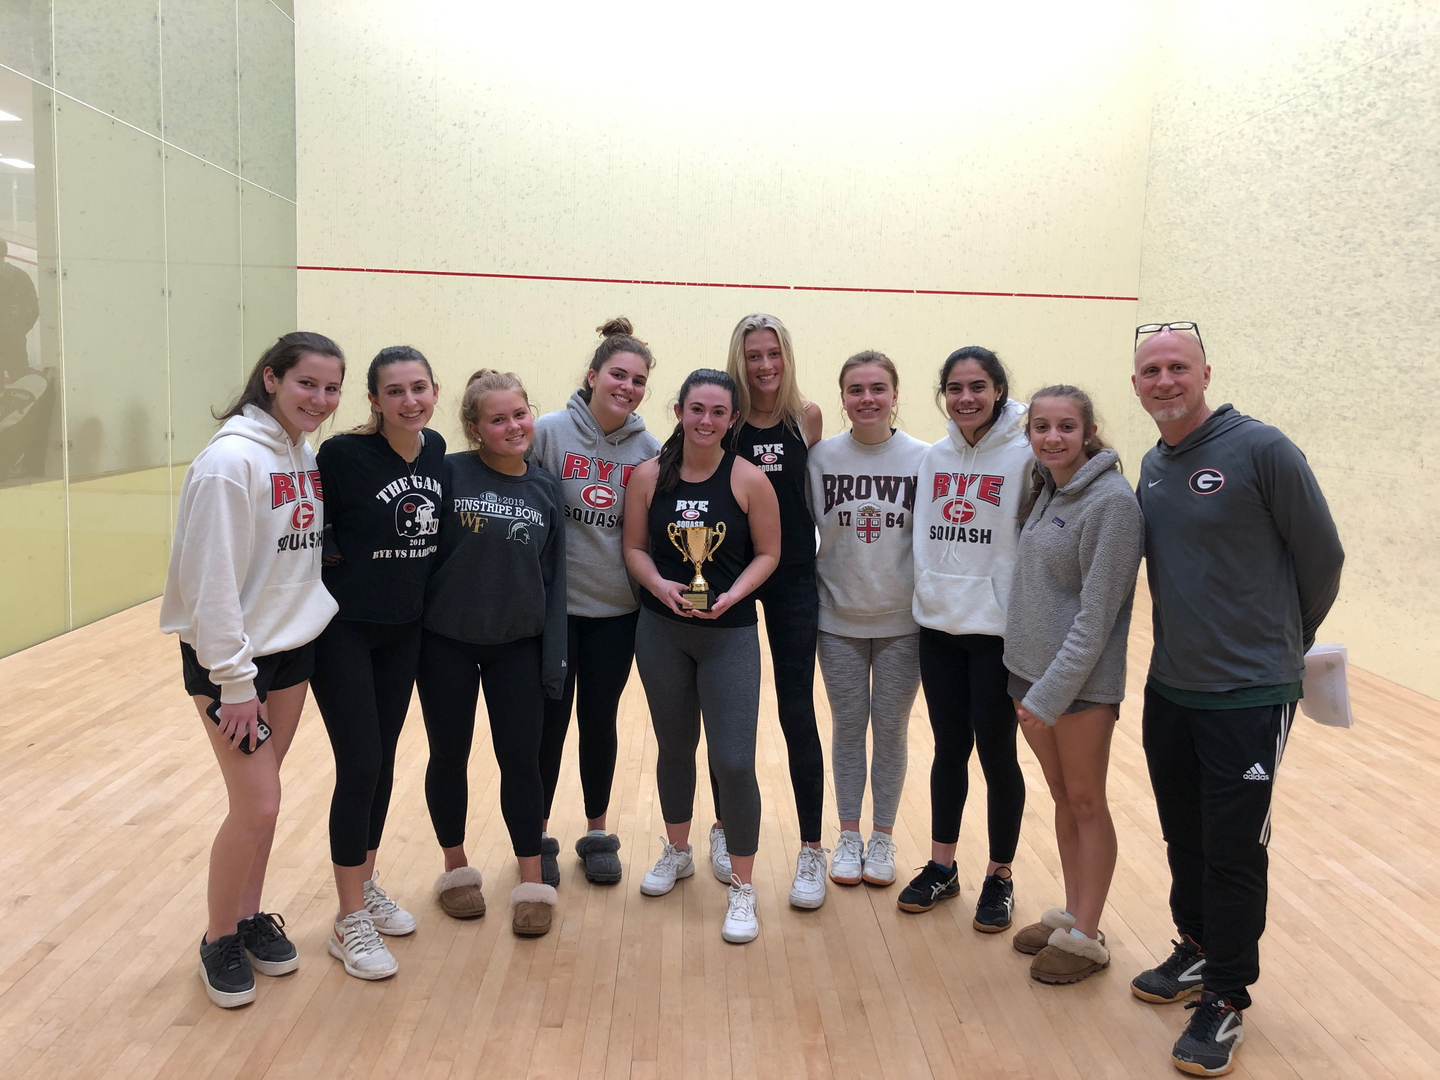 Rye High School squash C team winners of Div 3 at the FairWest Cup 2019/2020 season.